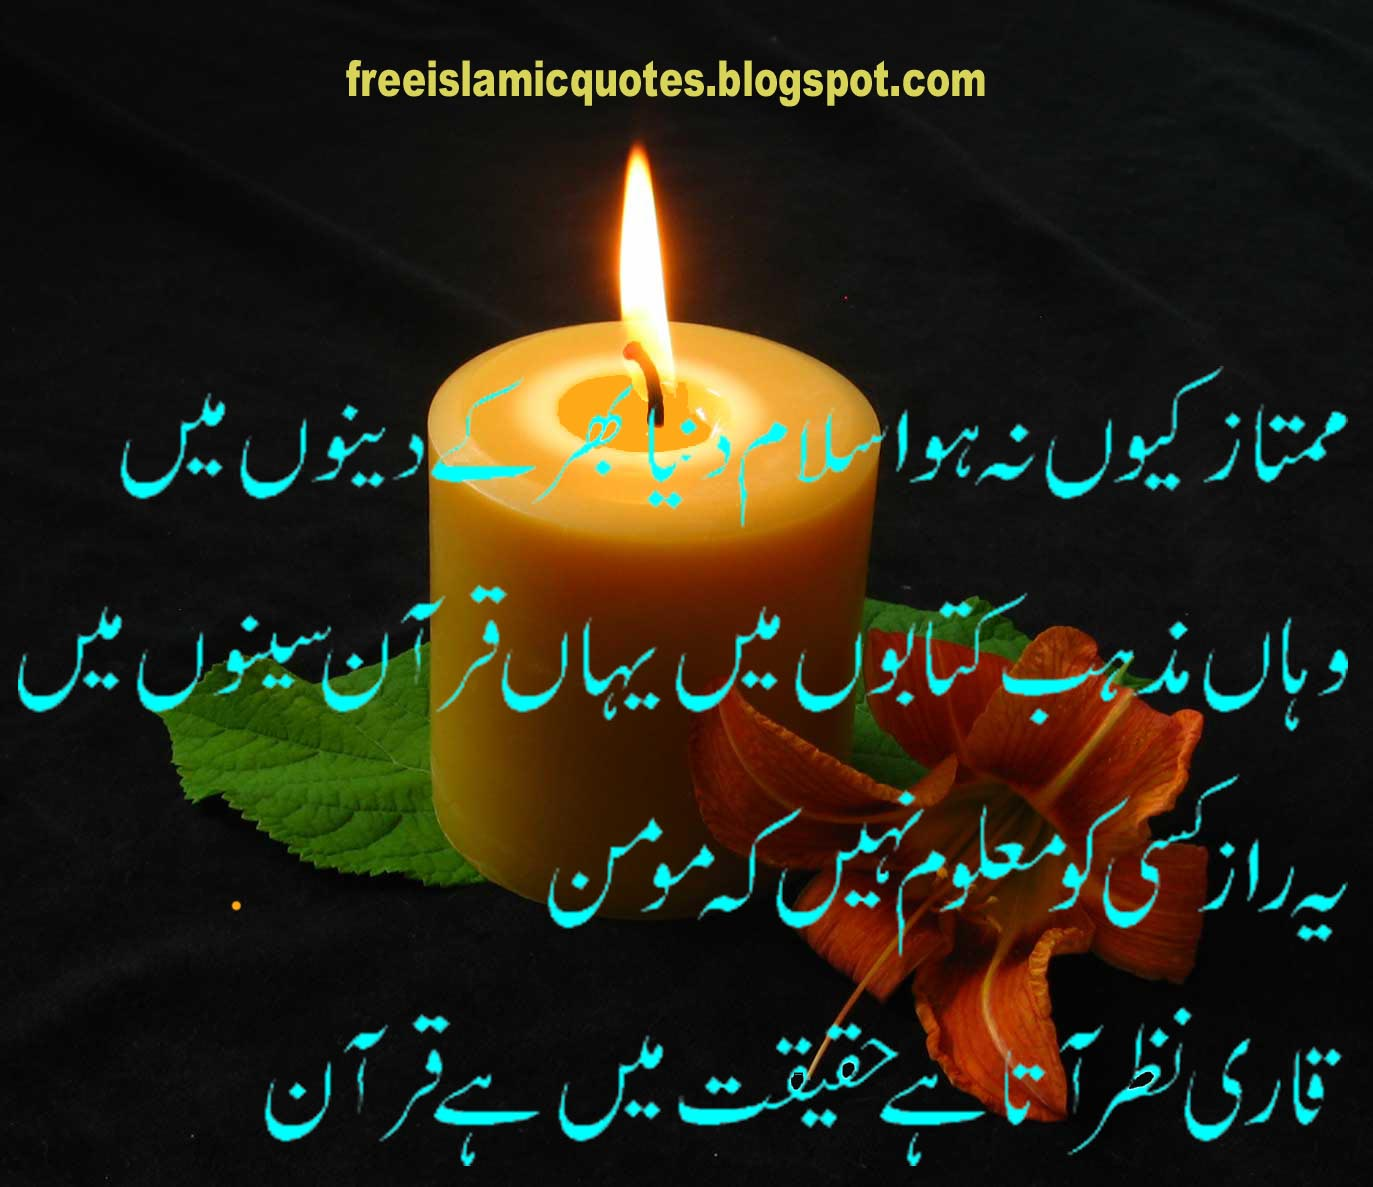 Islamic Quotes In Urdu Wallpapers Inspirational Islamic Poetry 1373x1187